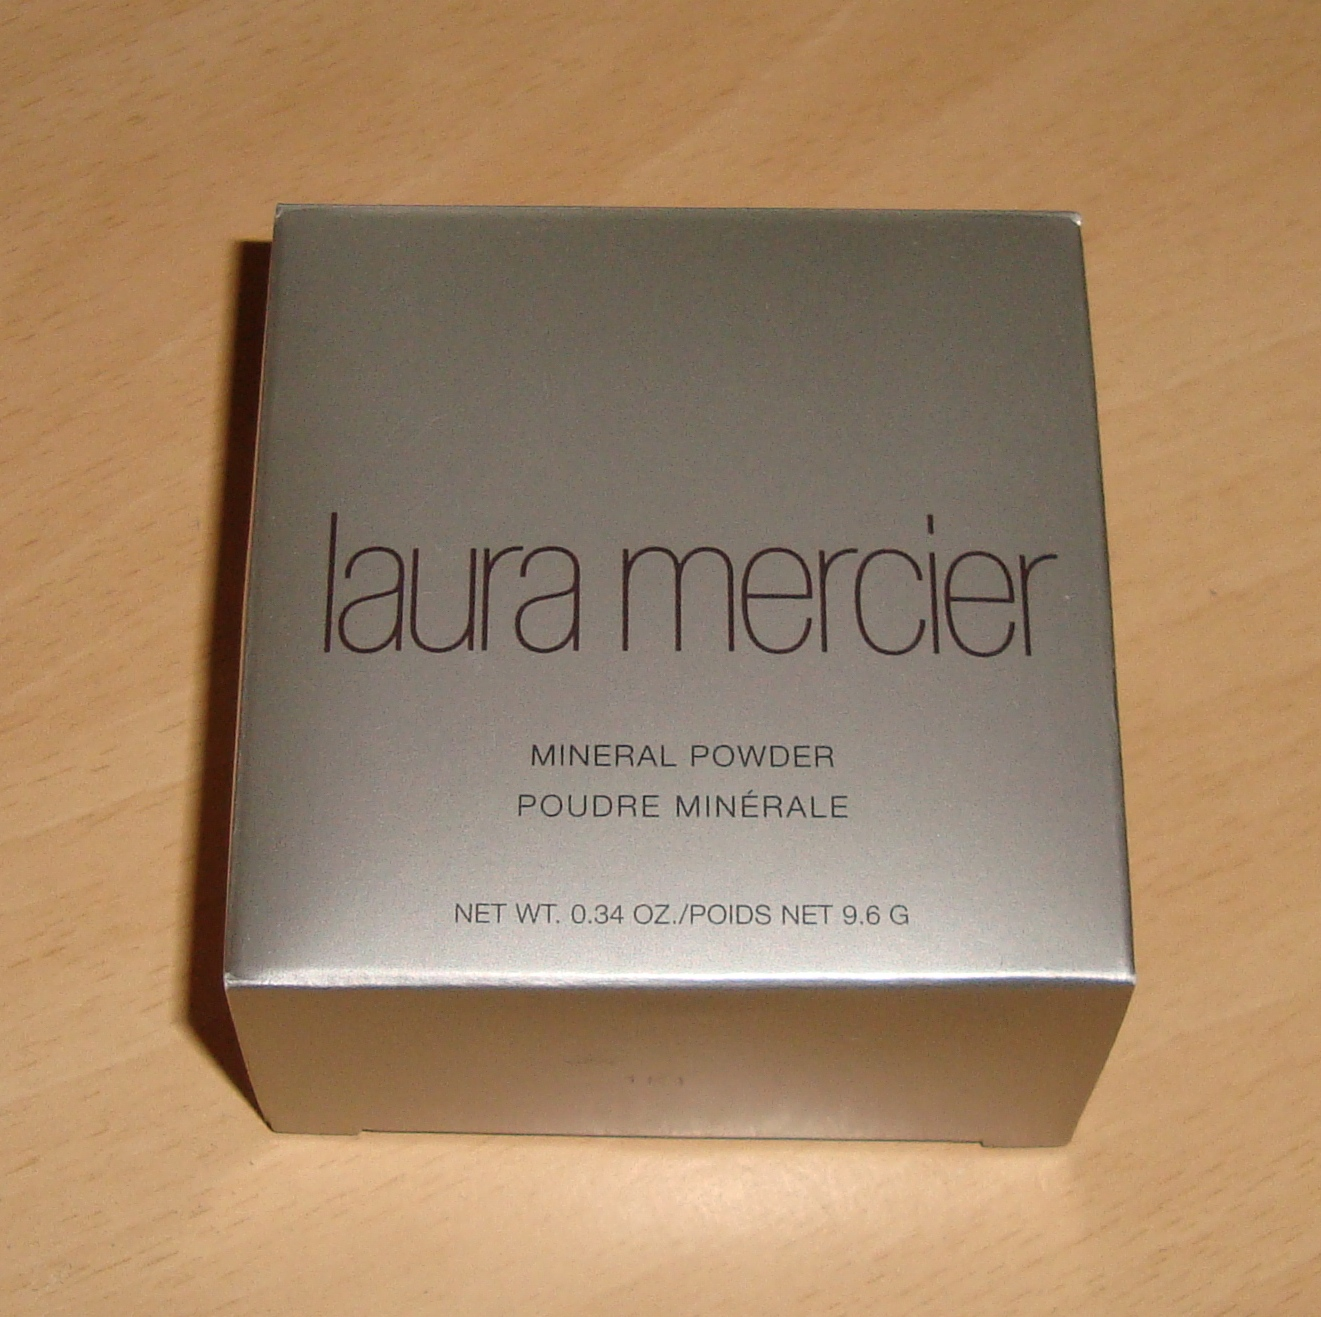 beautyful blog by pampashase review laura mercier. Black Bedroom Furniture Sets. Home Design Ideas